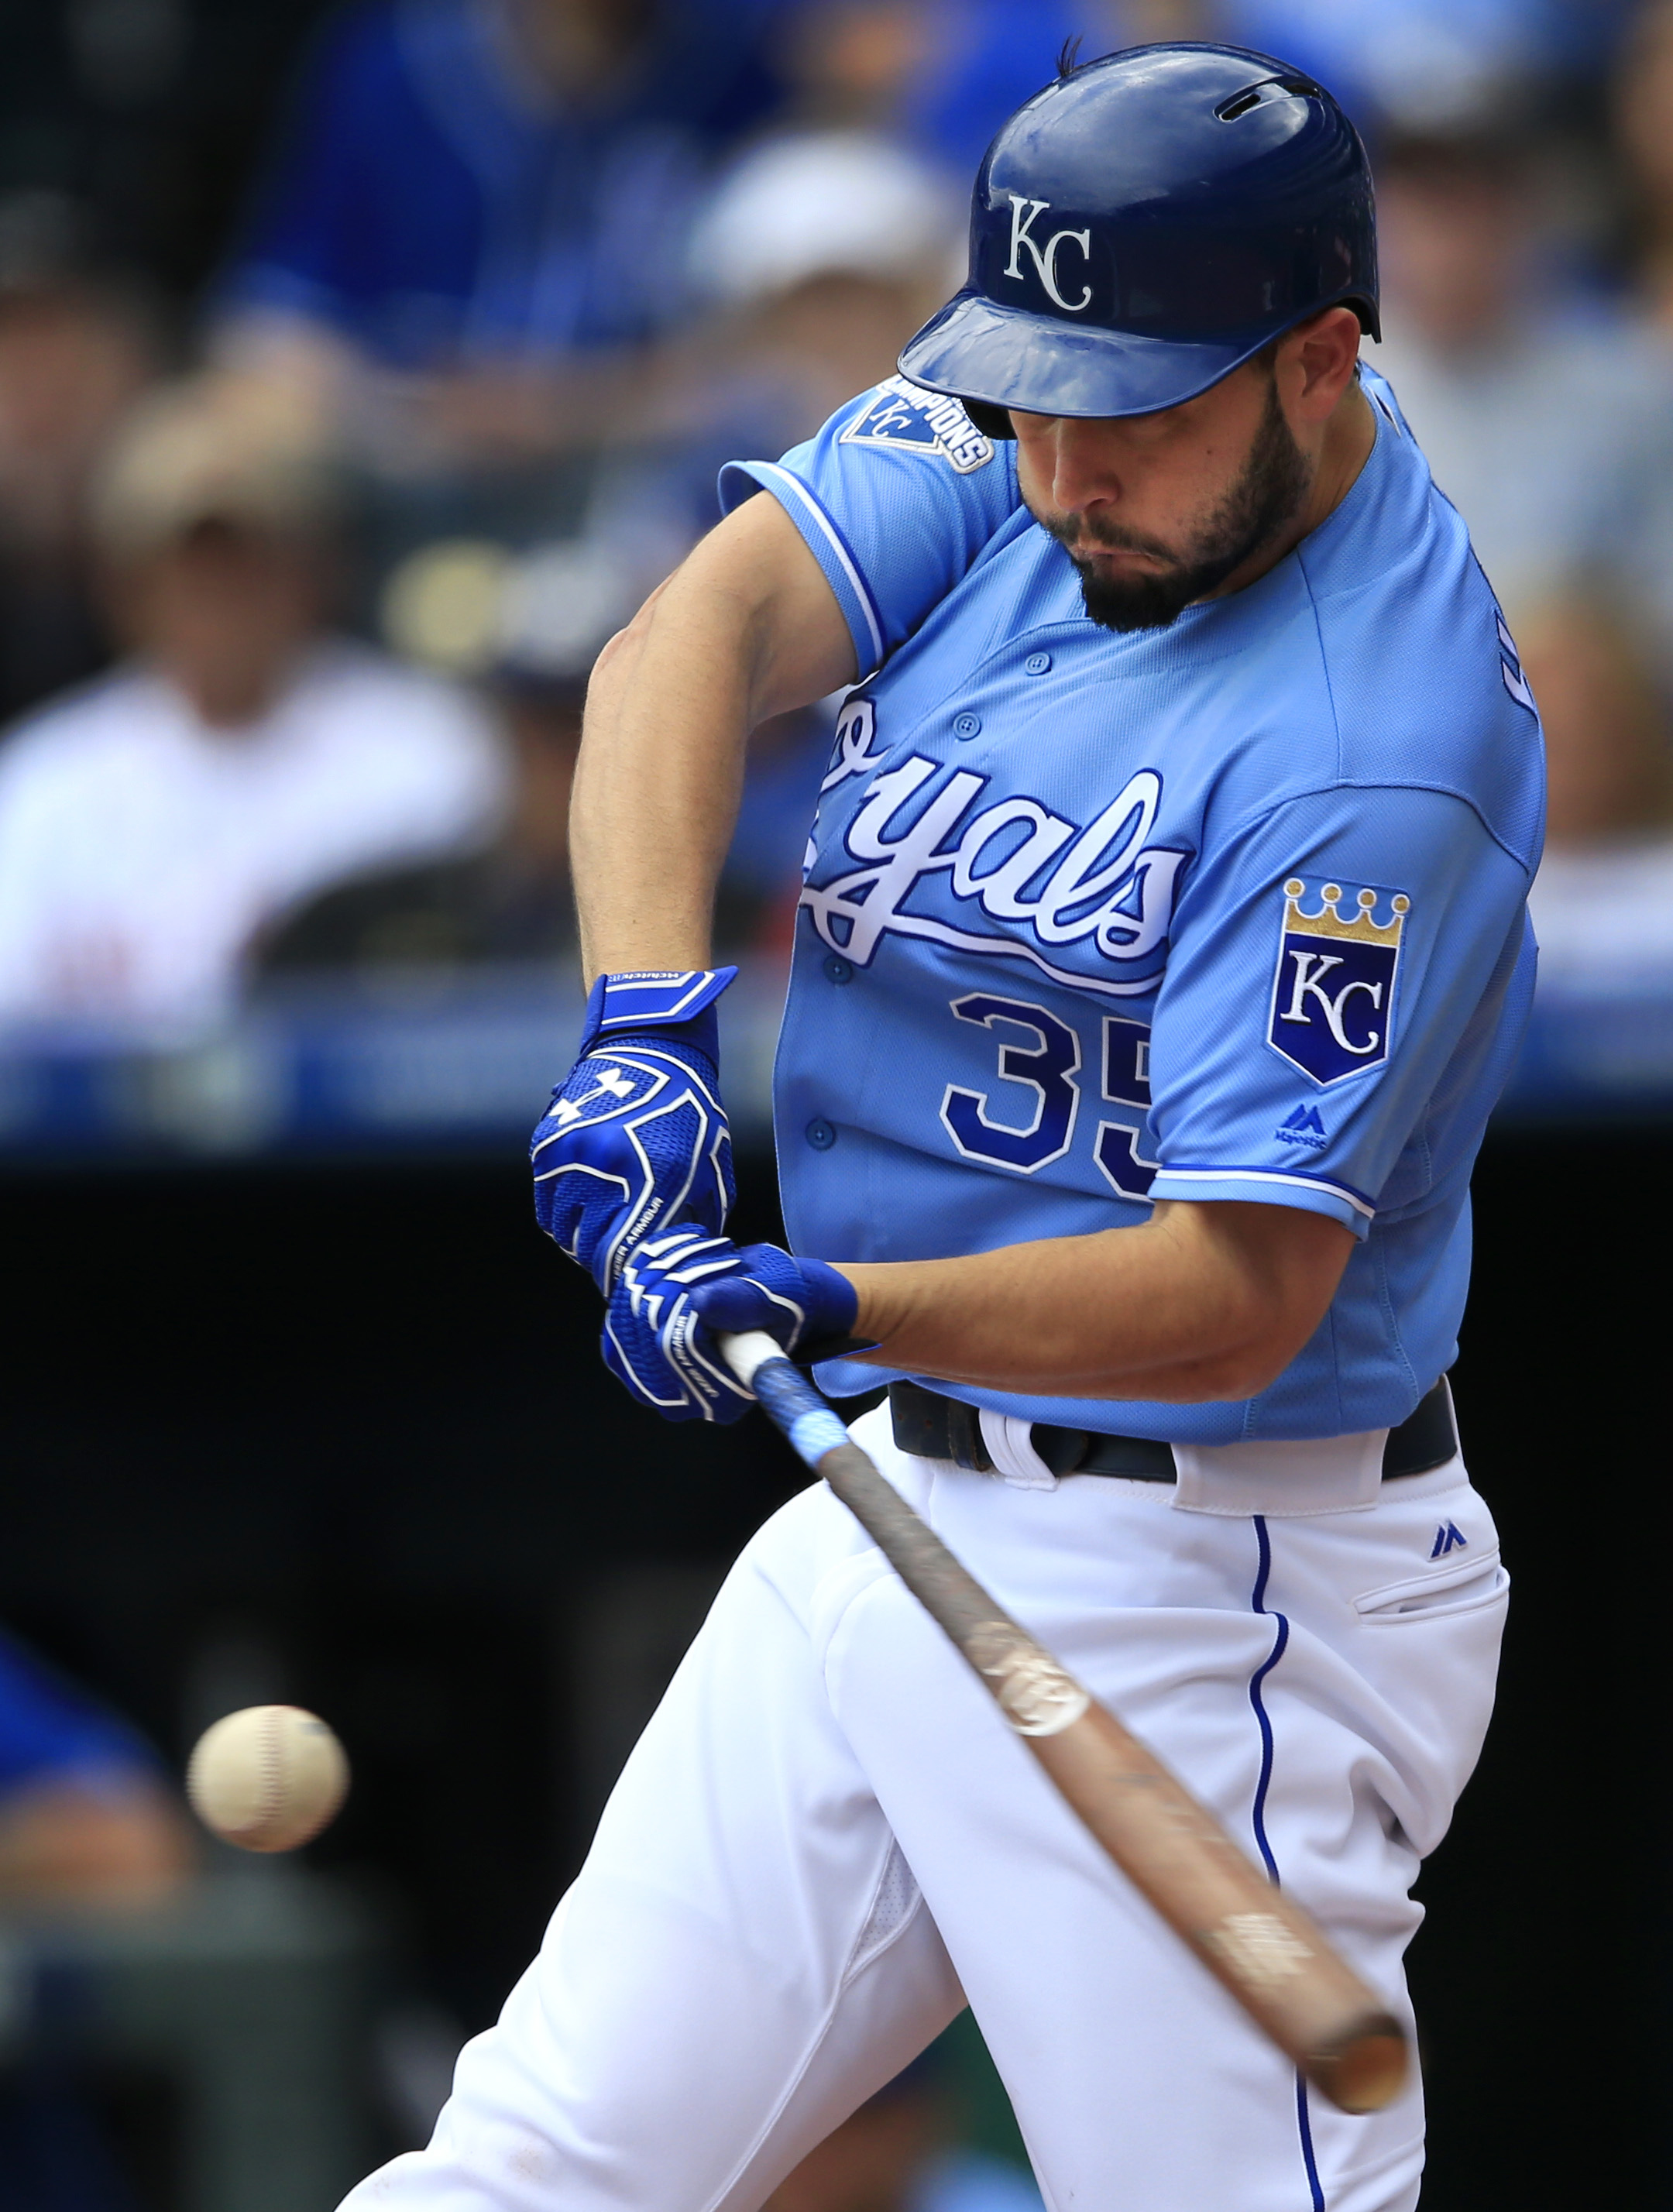 RETRANSMITTING TO REMOVE SCORE IN SECOND SENTENCE Kansas City Royals' Eric Hosmer hits a two-run home run off Boston Red Sox starting pitcher Steven Wright during the first inning of a baseball game at Kauffman Stadium in Kansas City, Mo., Wednesday, May